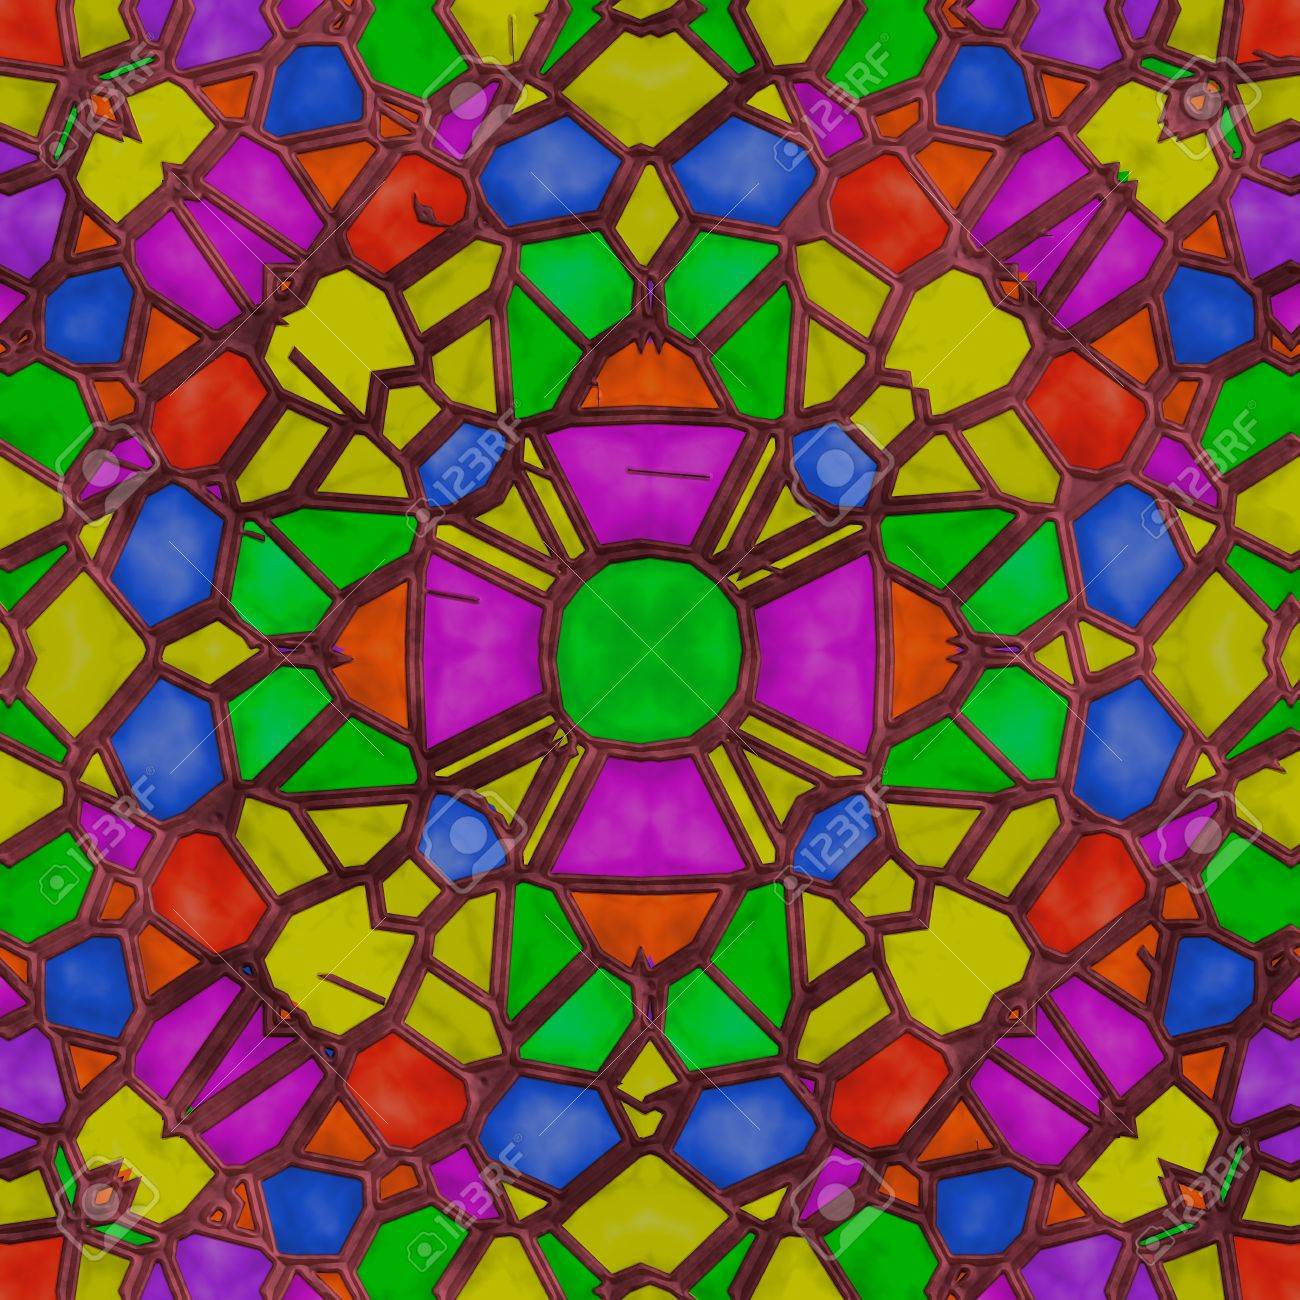 High quality seamless stained glass background Stock Photo - 13410141